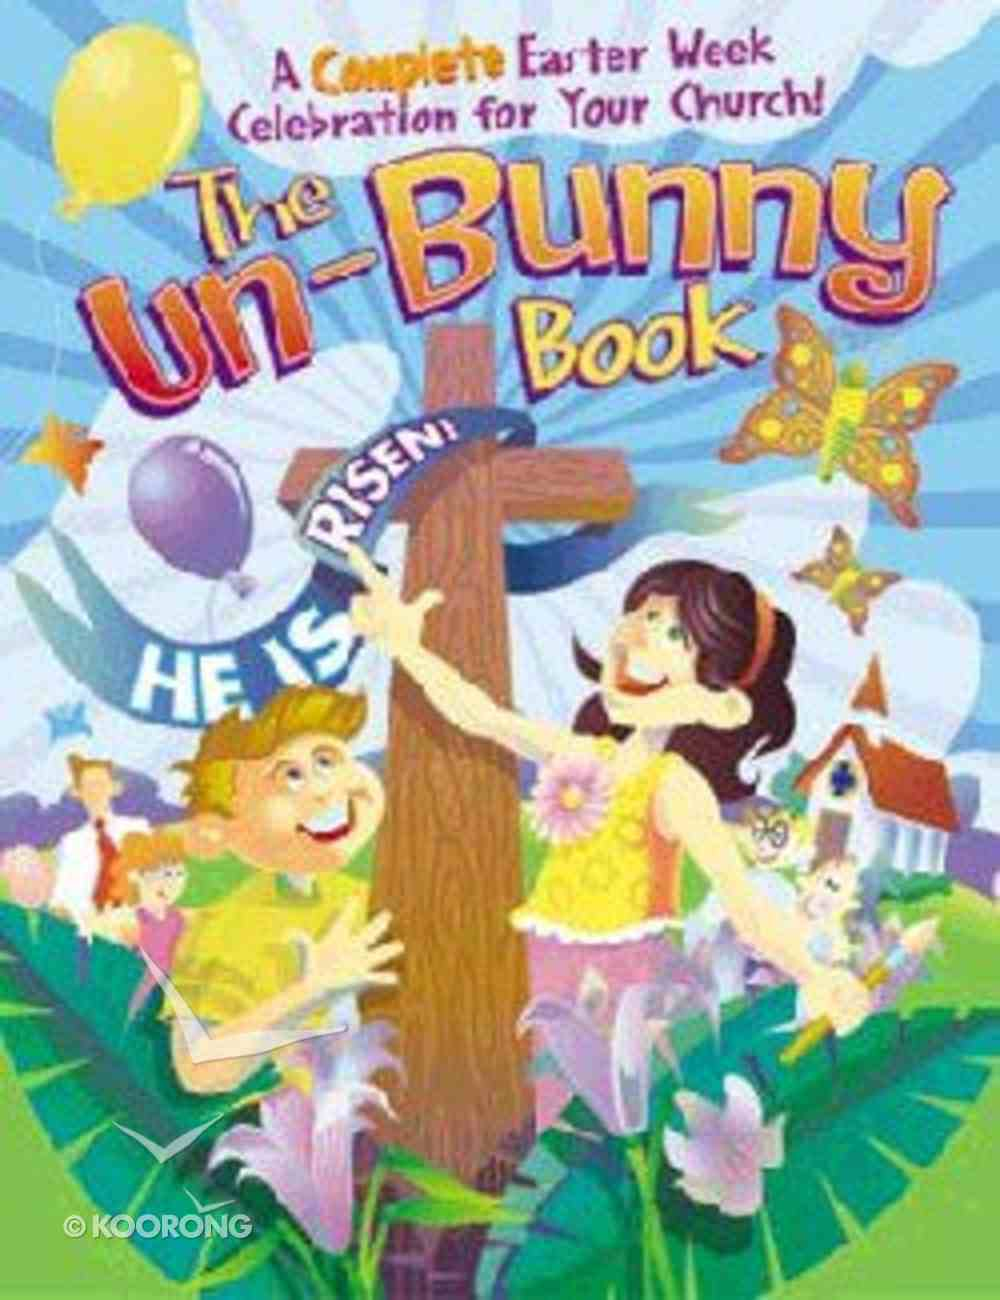 The Un-Bunny Book: A Complete Easter Week Celebration For Your Church Paperback